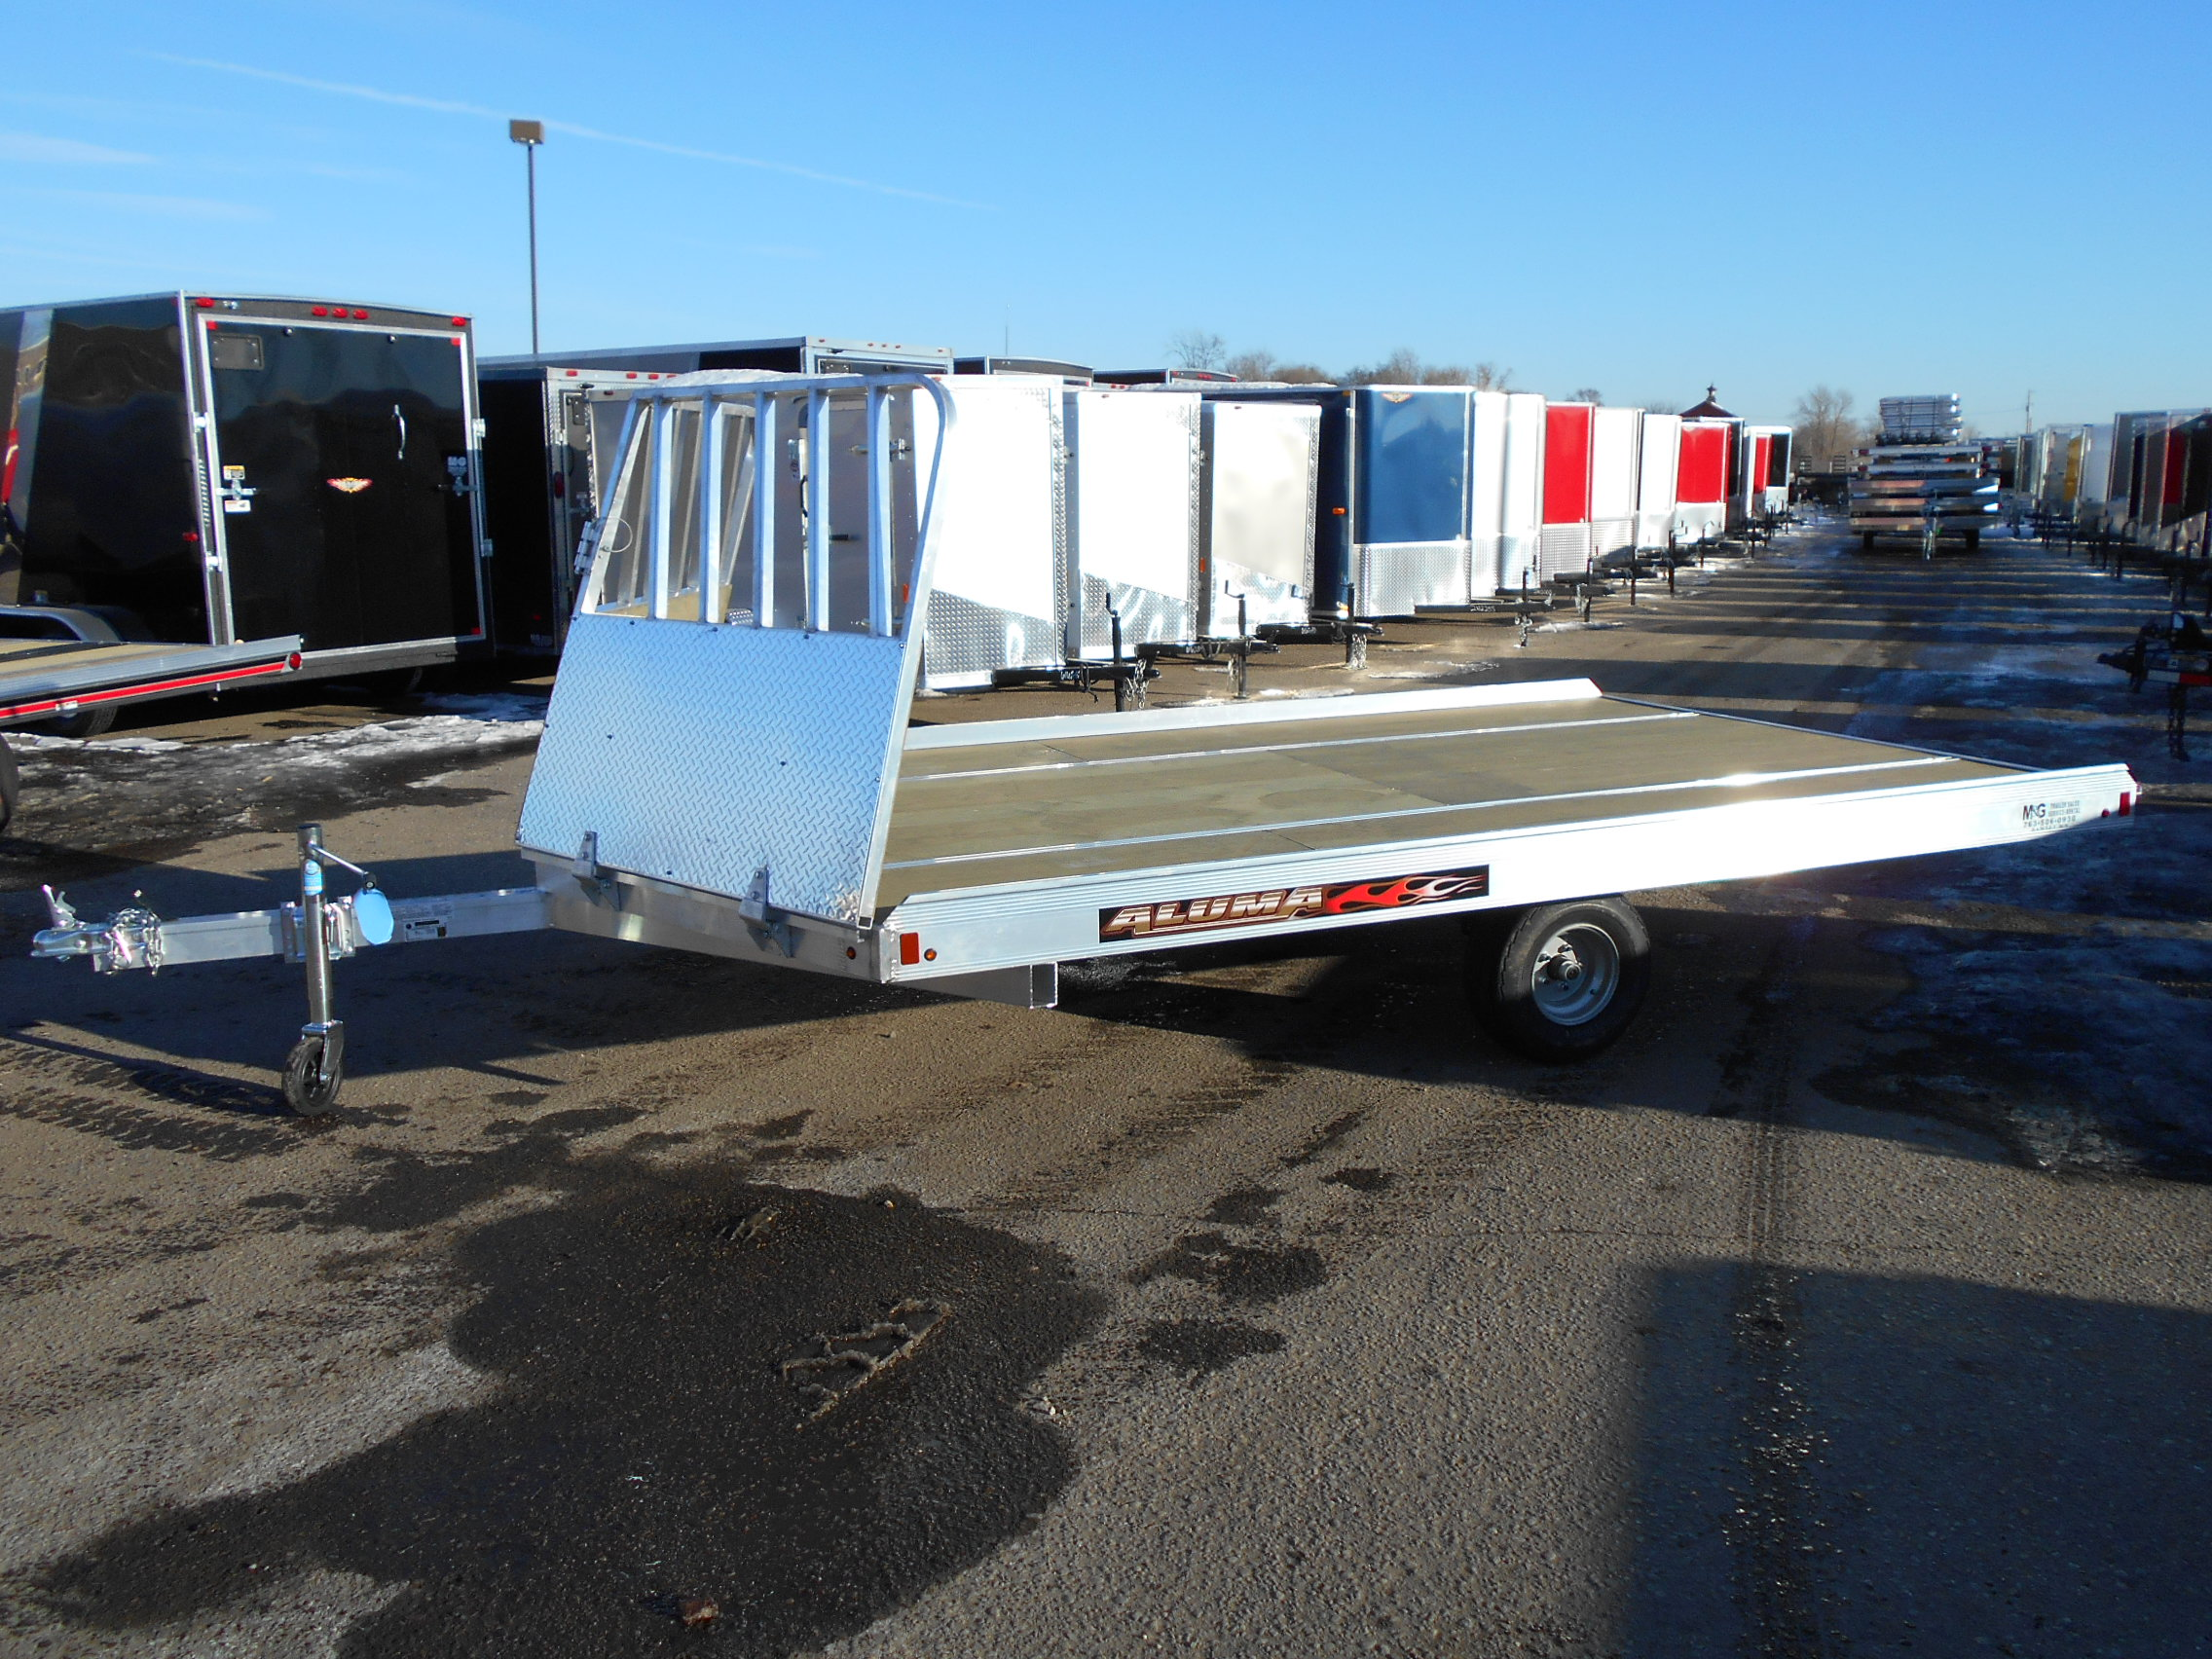 Used snowmobile trailer value guide.